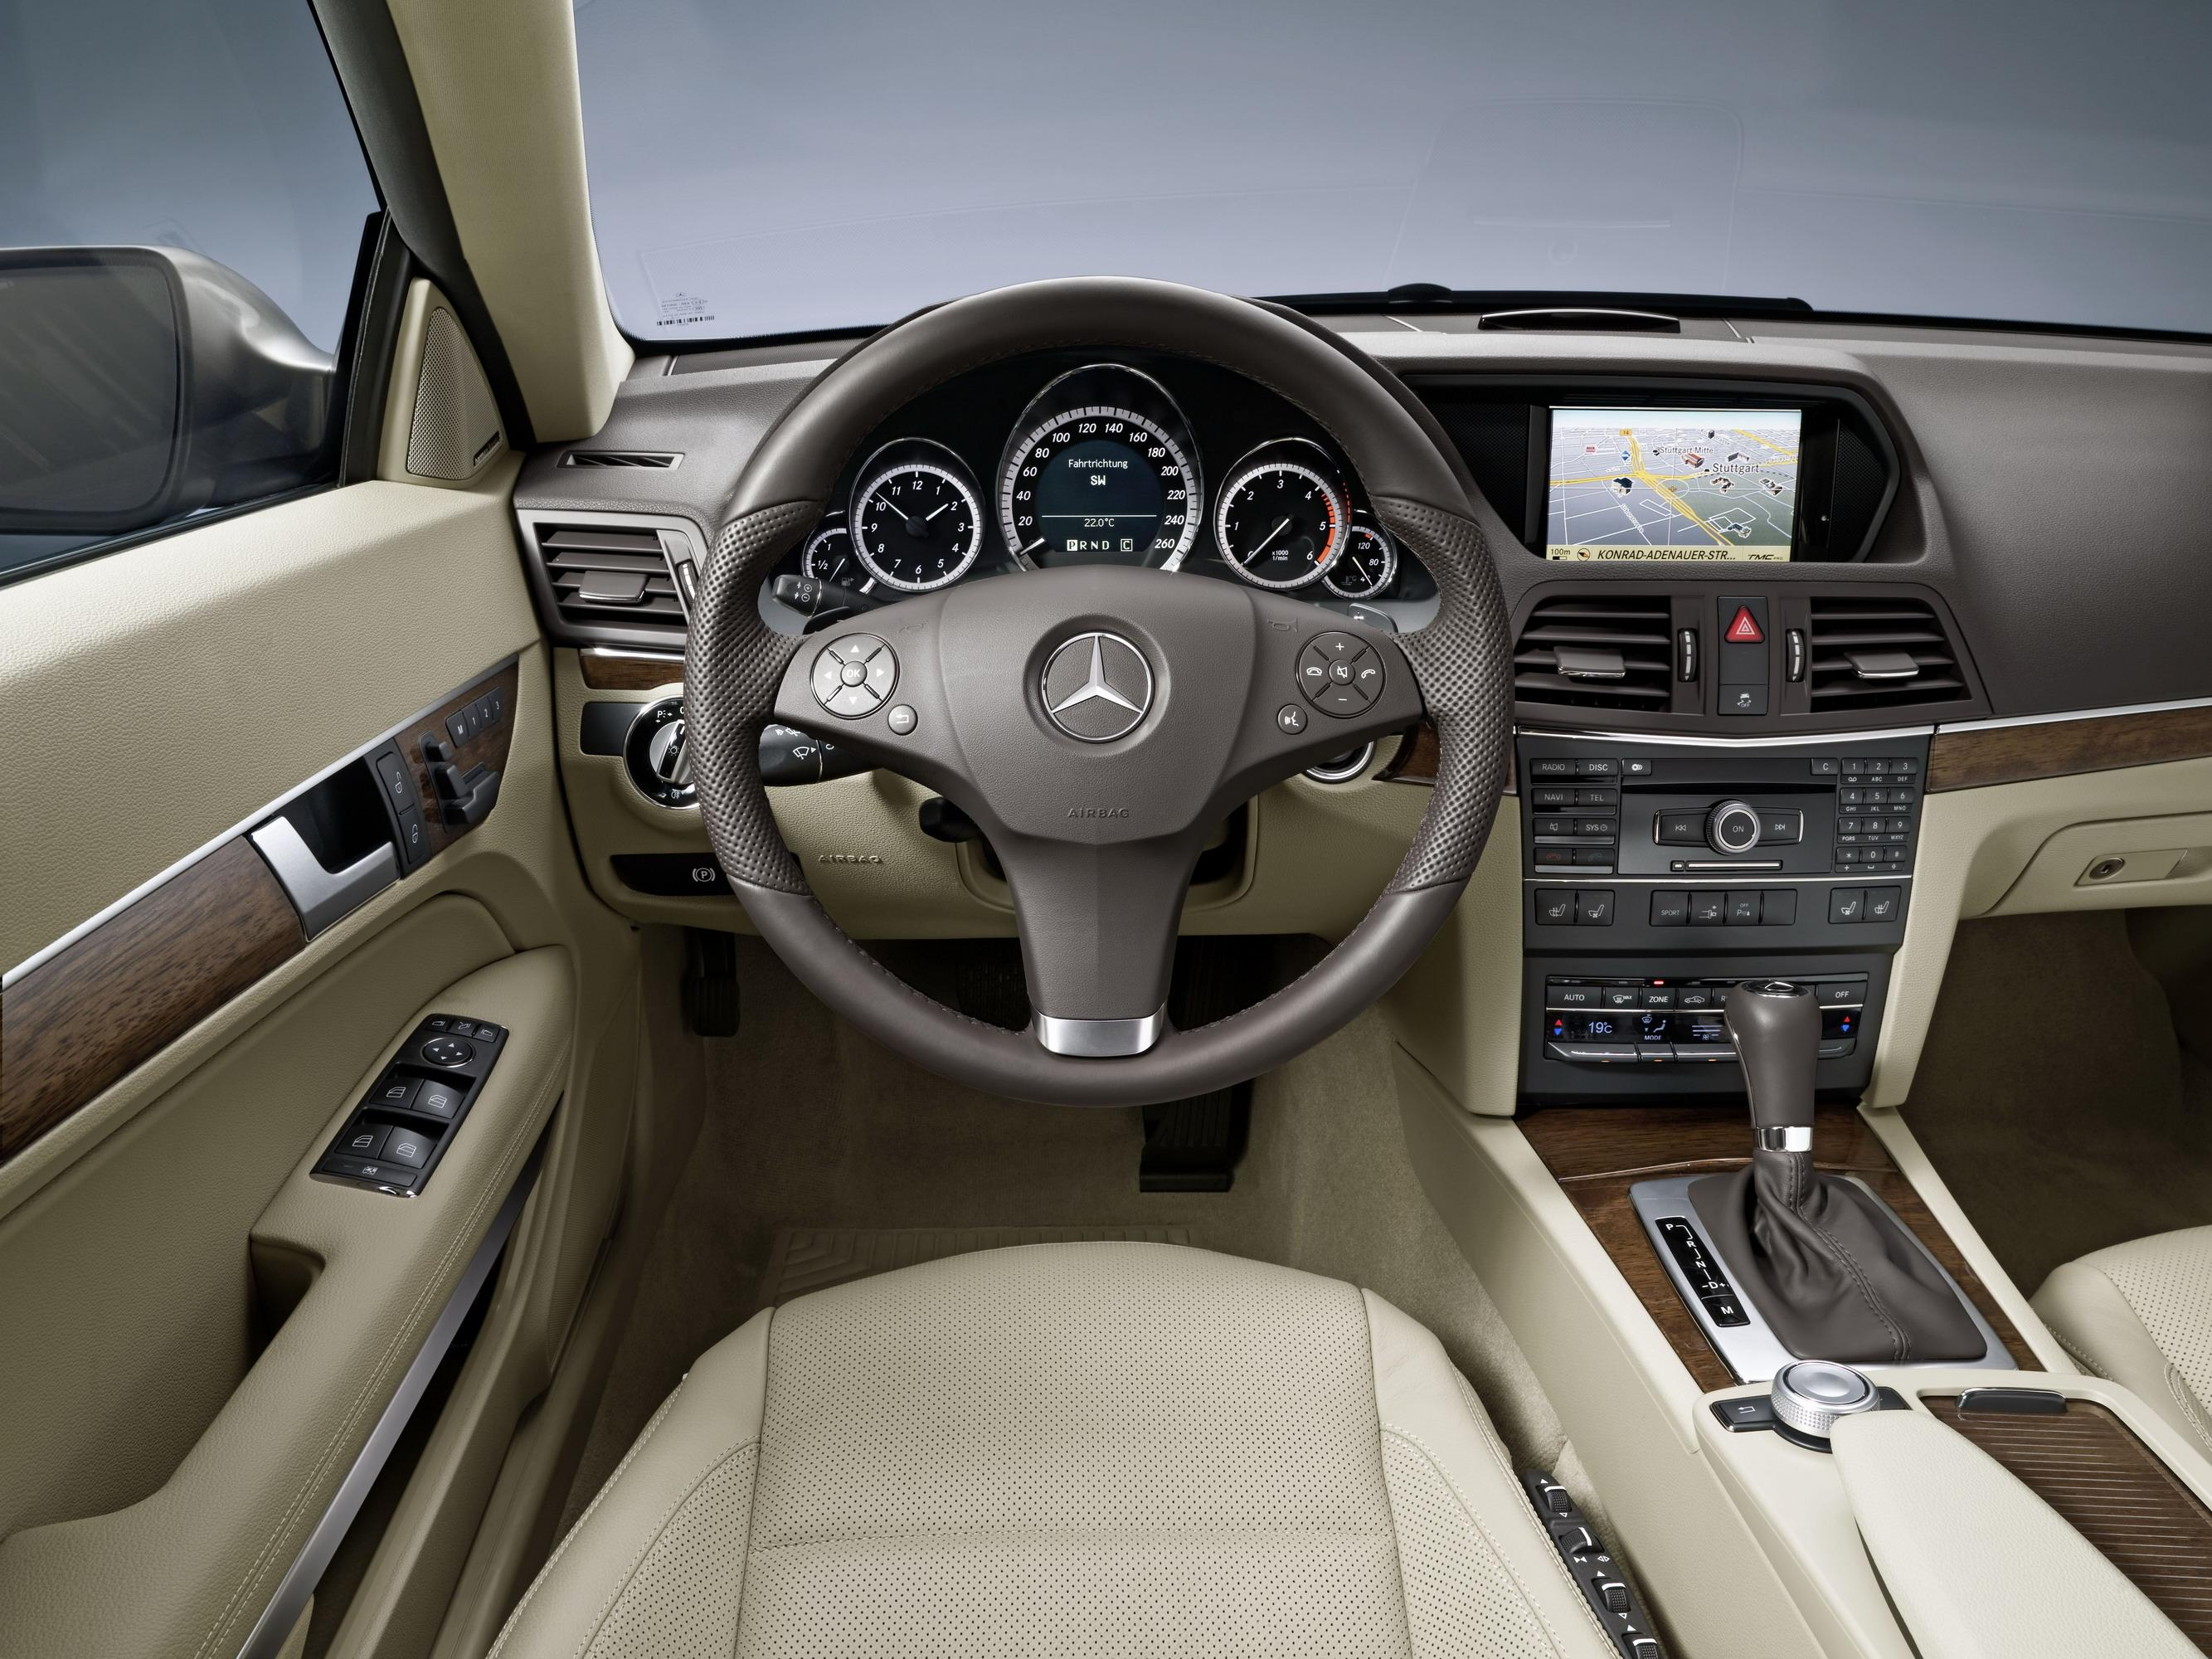 2010 Mercedes E-Class Coupe   Top Speed